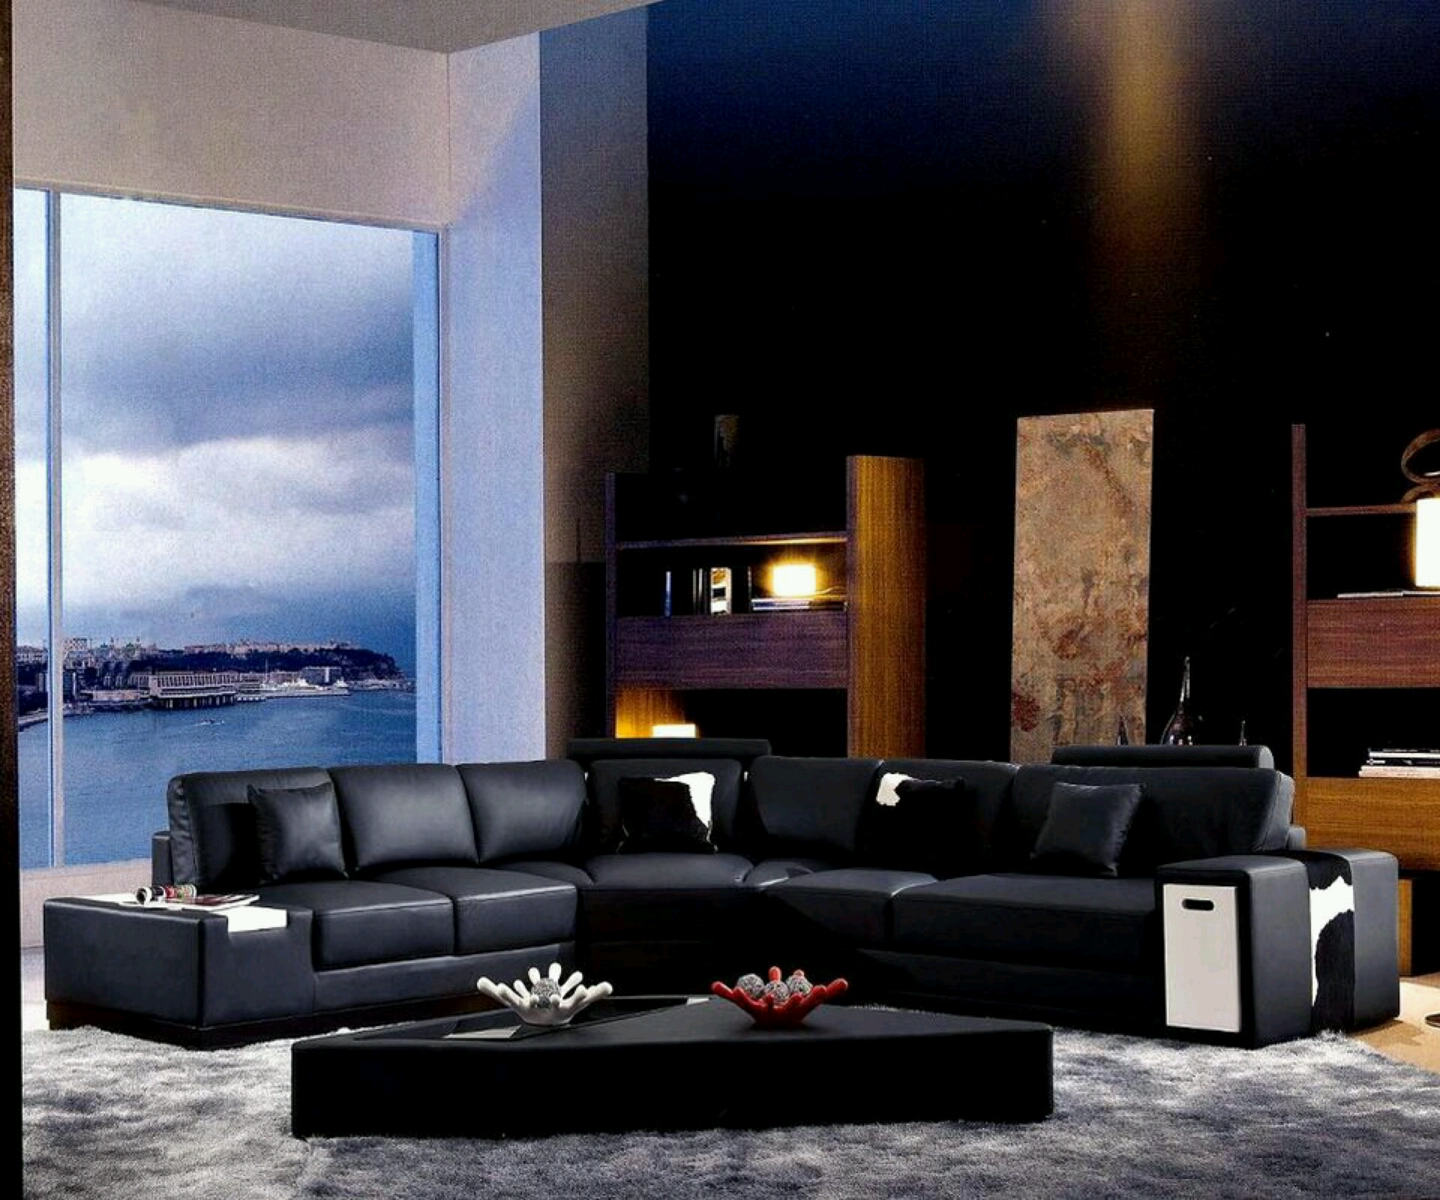 designs latest.: Luxury living rooms interior modern designs ideas